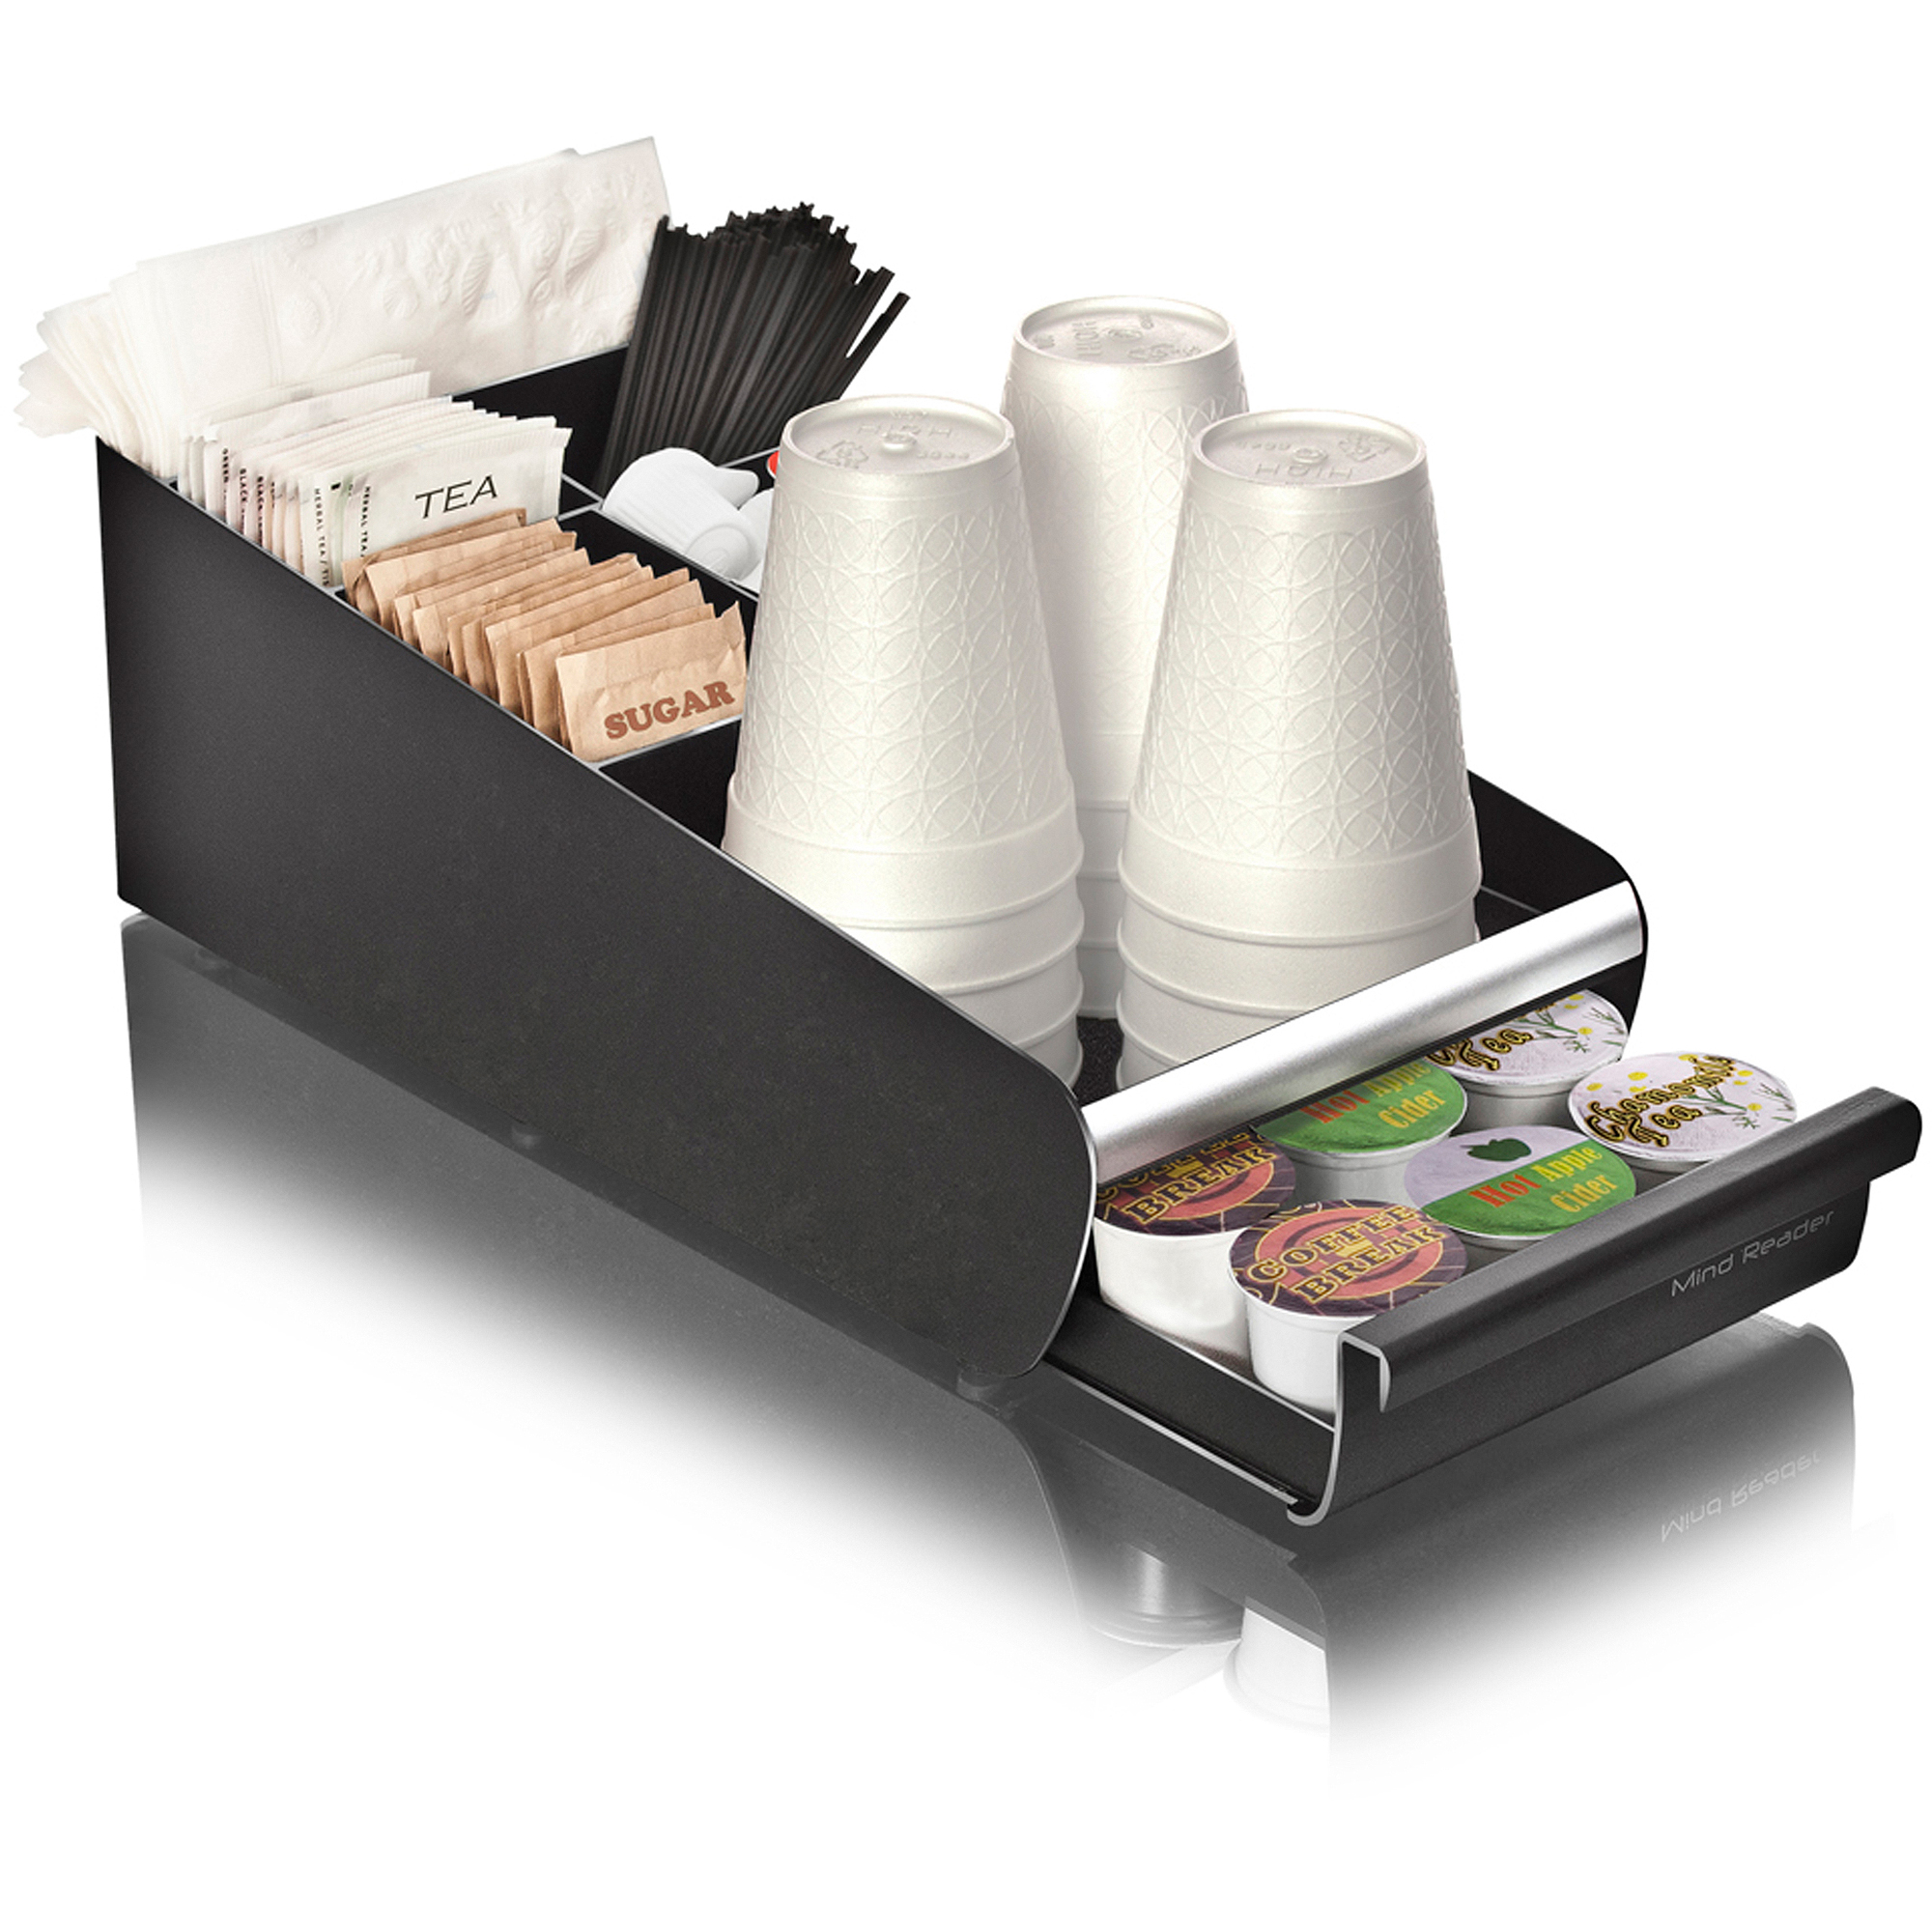 Mind Reader Coffee Condiment Storage Organizer with K-Cup Single Serve Coffee Pod Drawer, Black